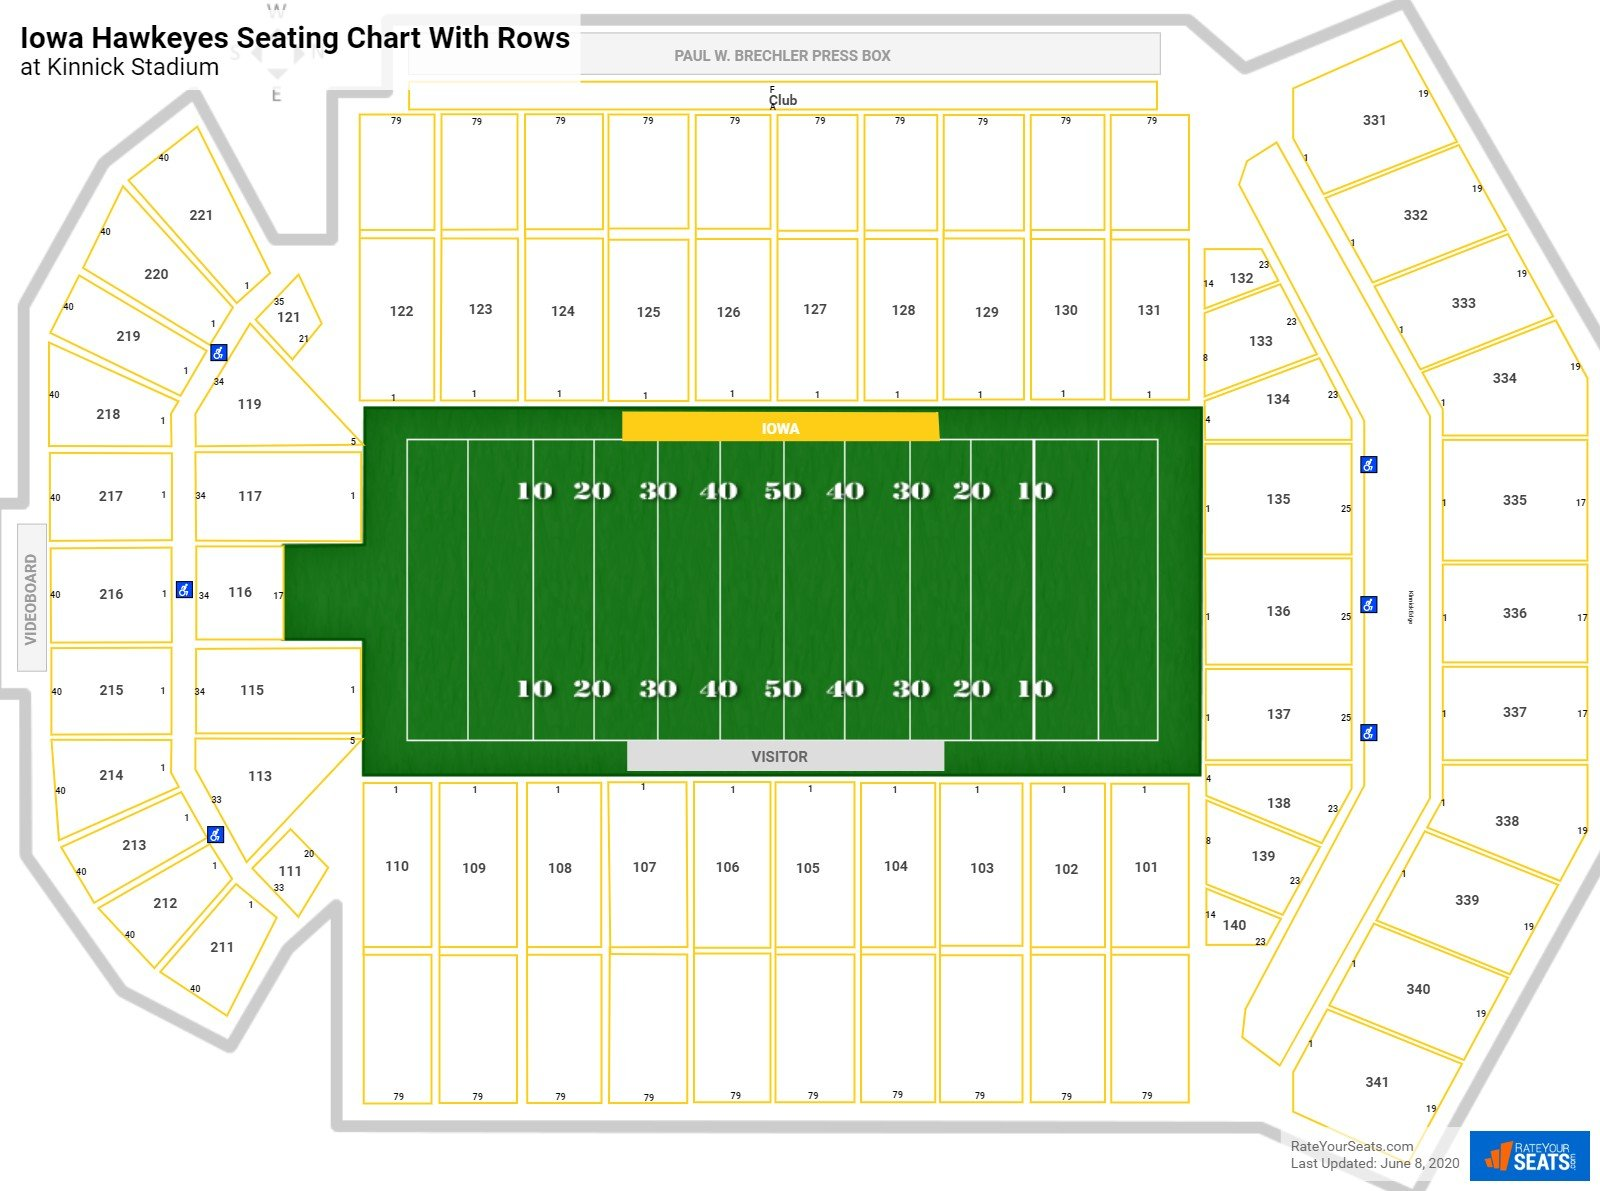 Kinnick Stadium seating chart with rows